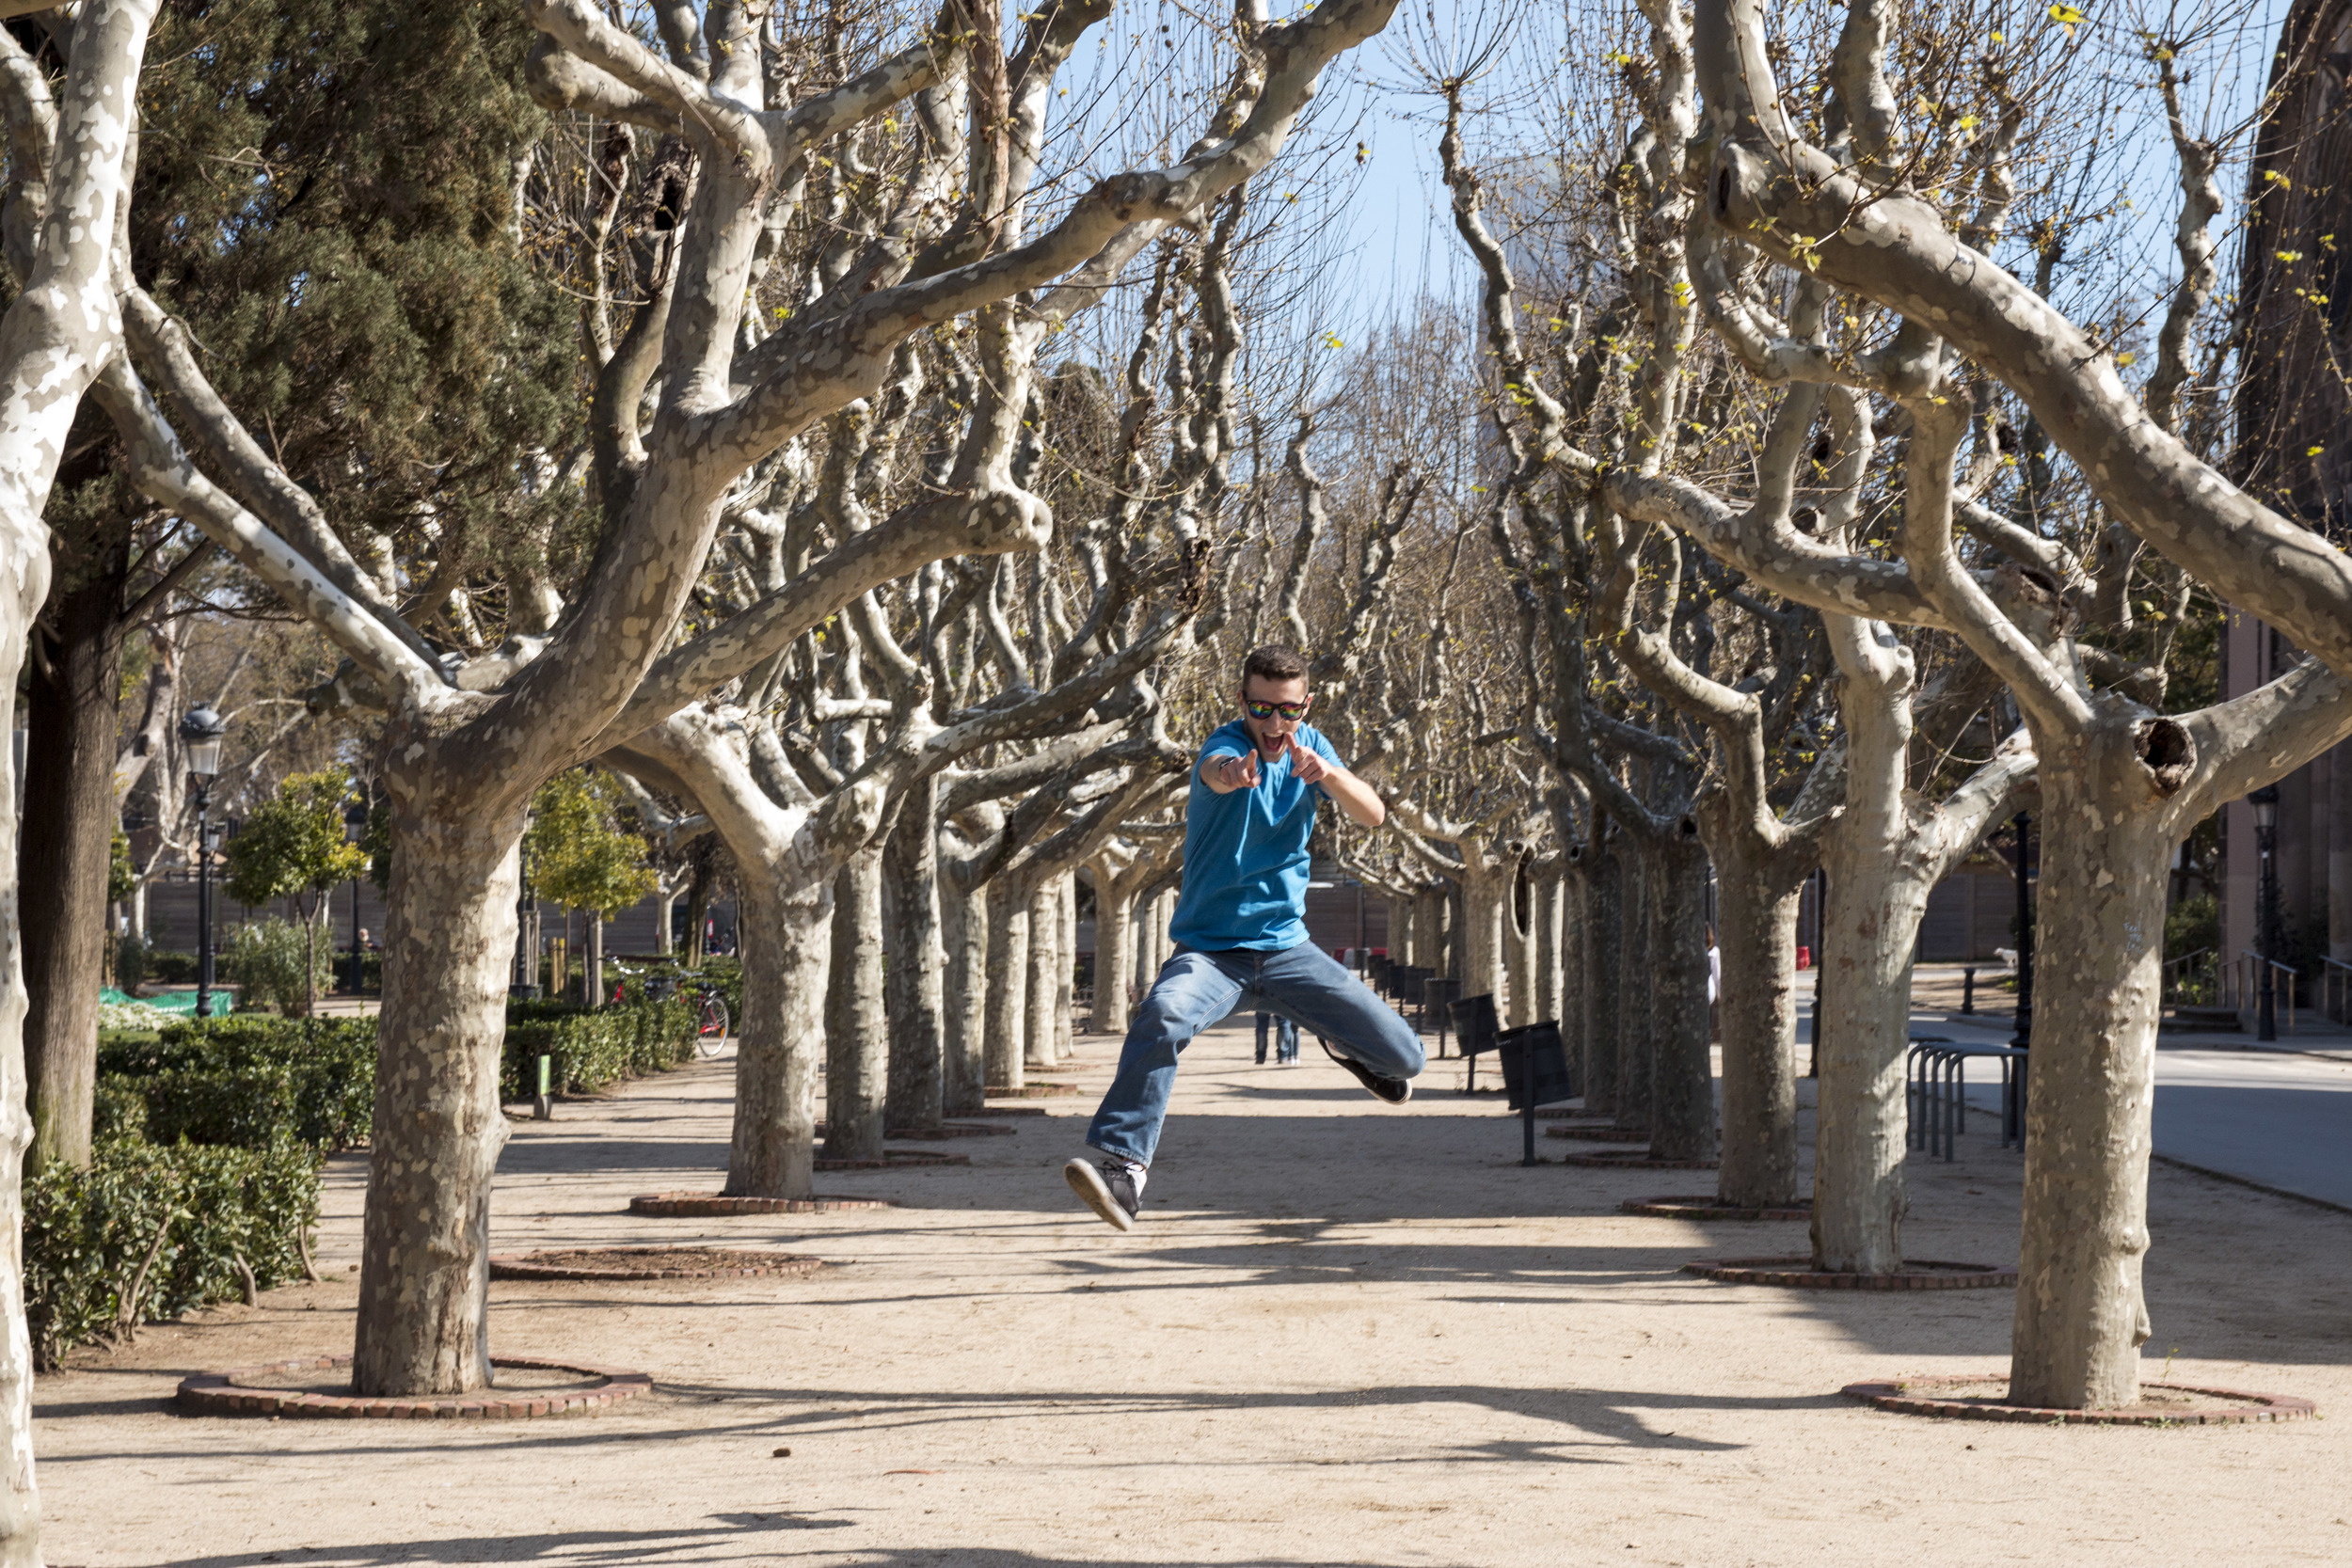 Parc de la Ciutadella was probably one of the most beautiful parks I've ever walked around. Check out these trees! Oh, and me jumping.